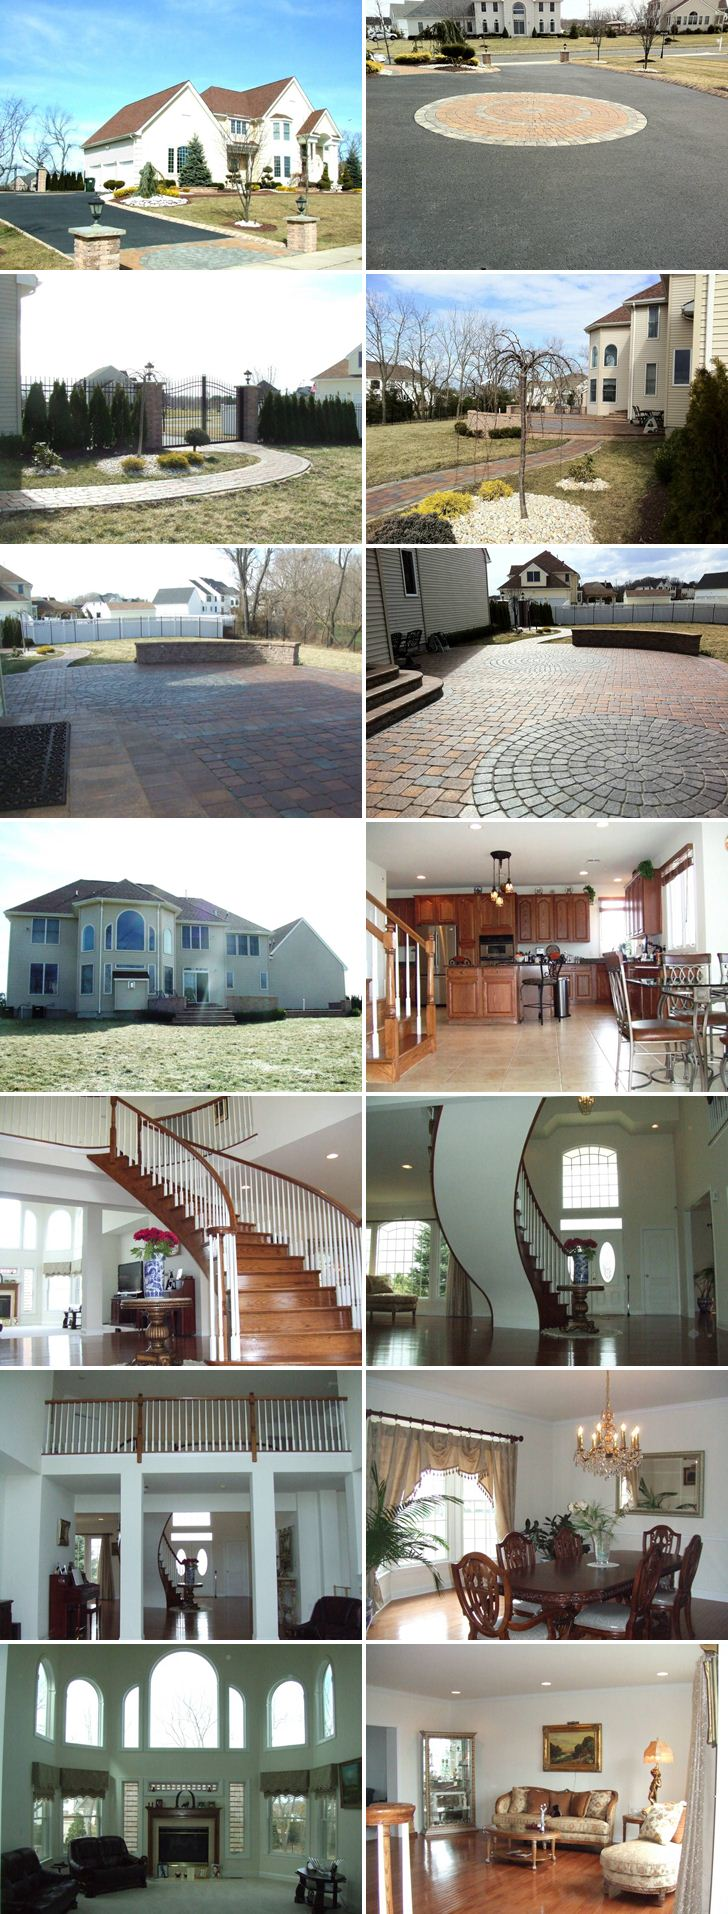 Pictures of Karina Smirnoff's house in Freehold, New Jersey